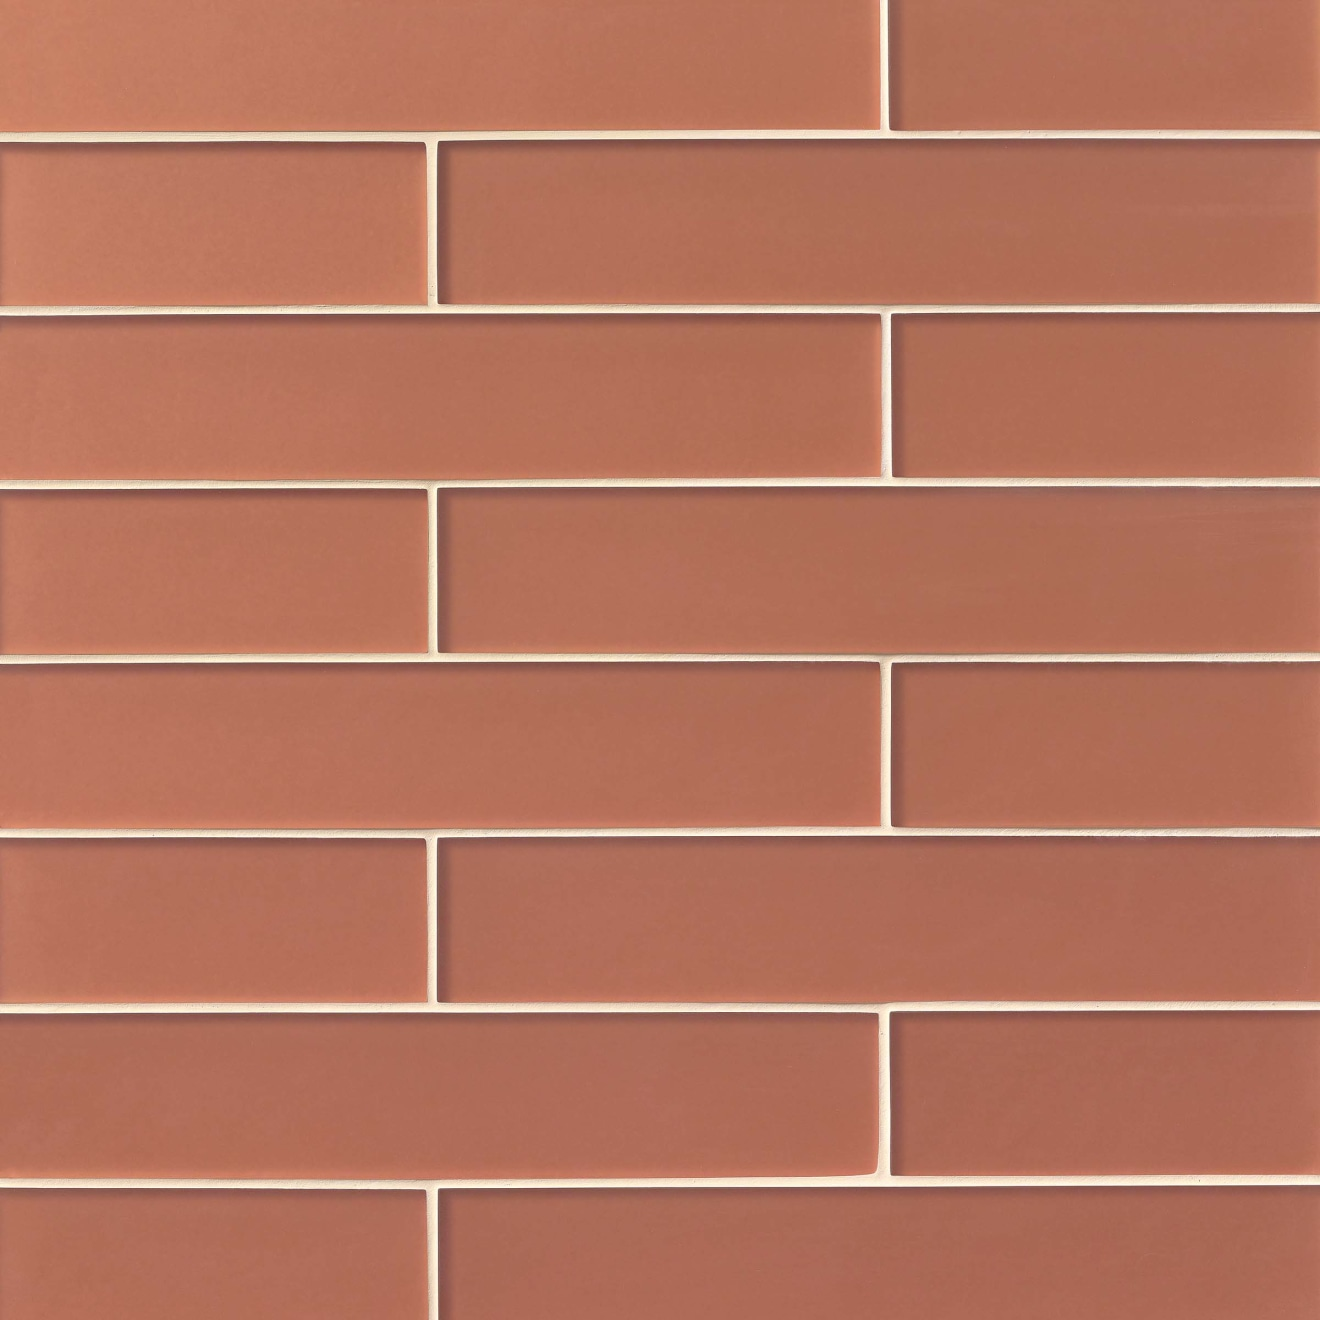 "Verve 3"" x 15.75"" Wall Tile in Coral Spice"